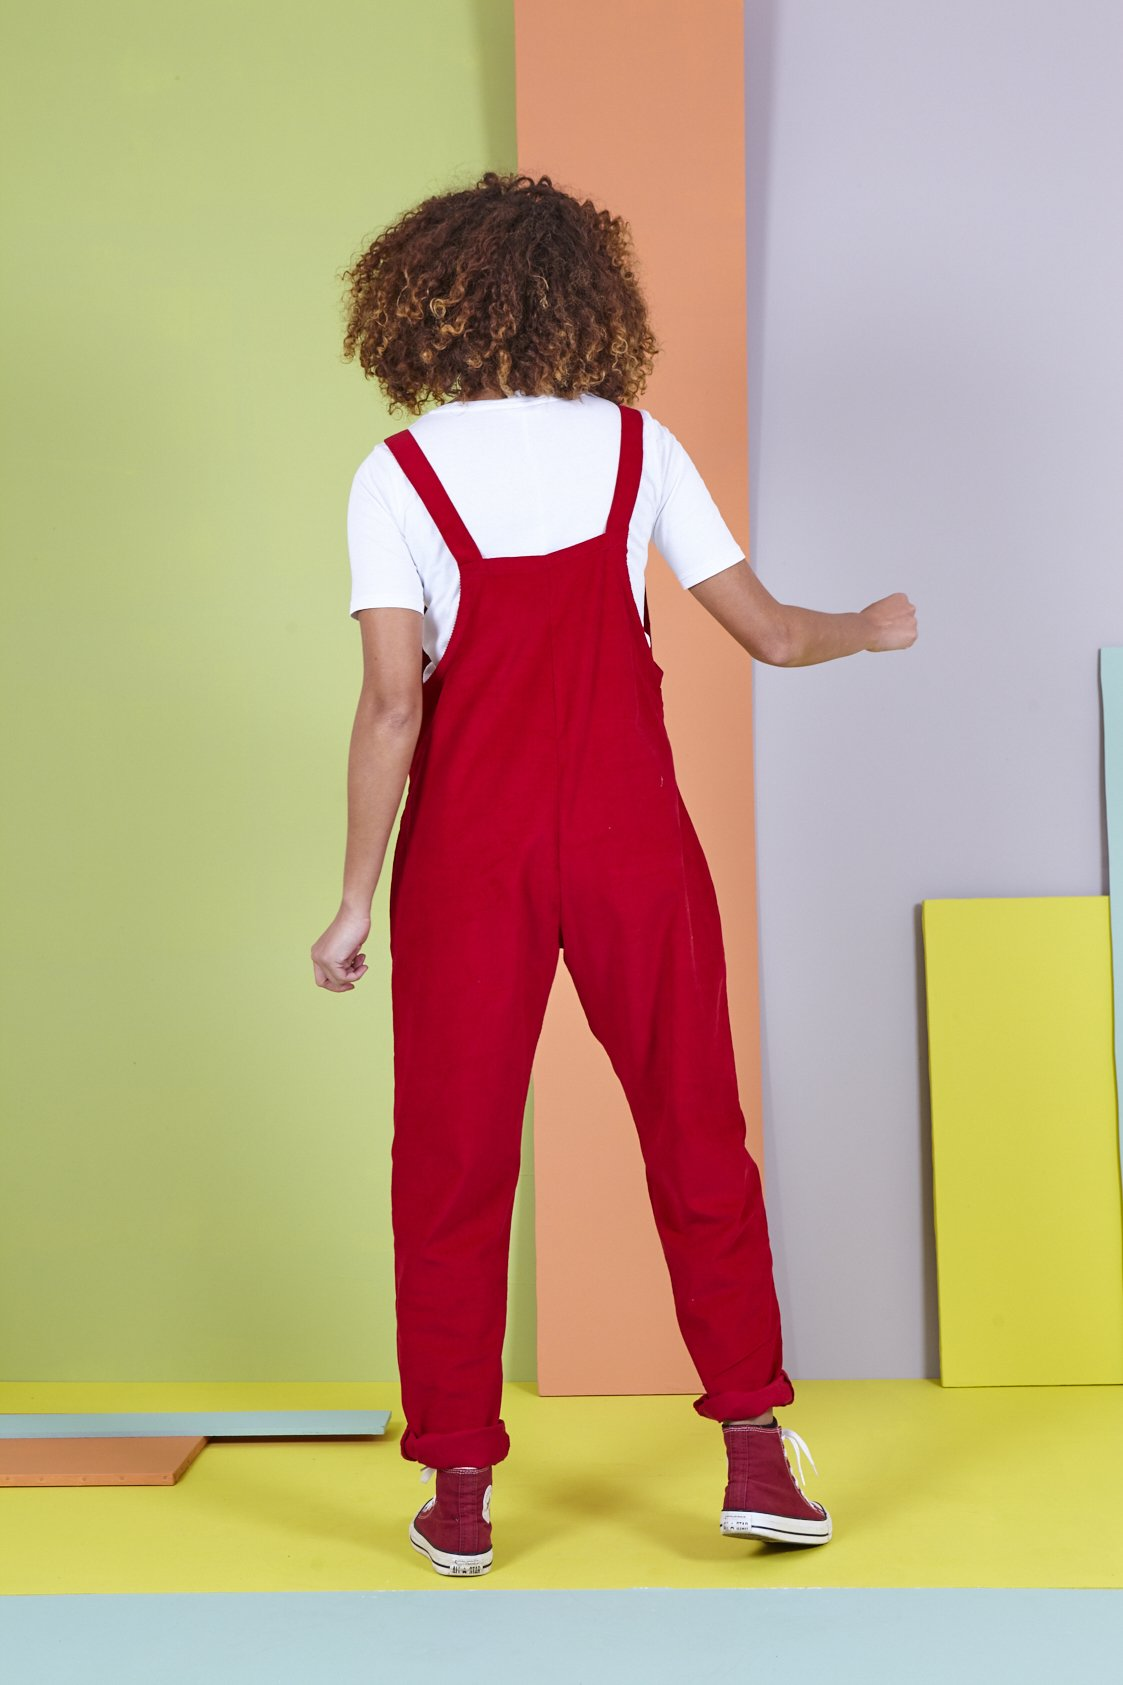 Organic Originals in Salsa Red-Dungarees-Sancho's Dress